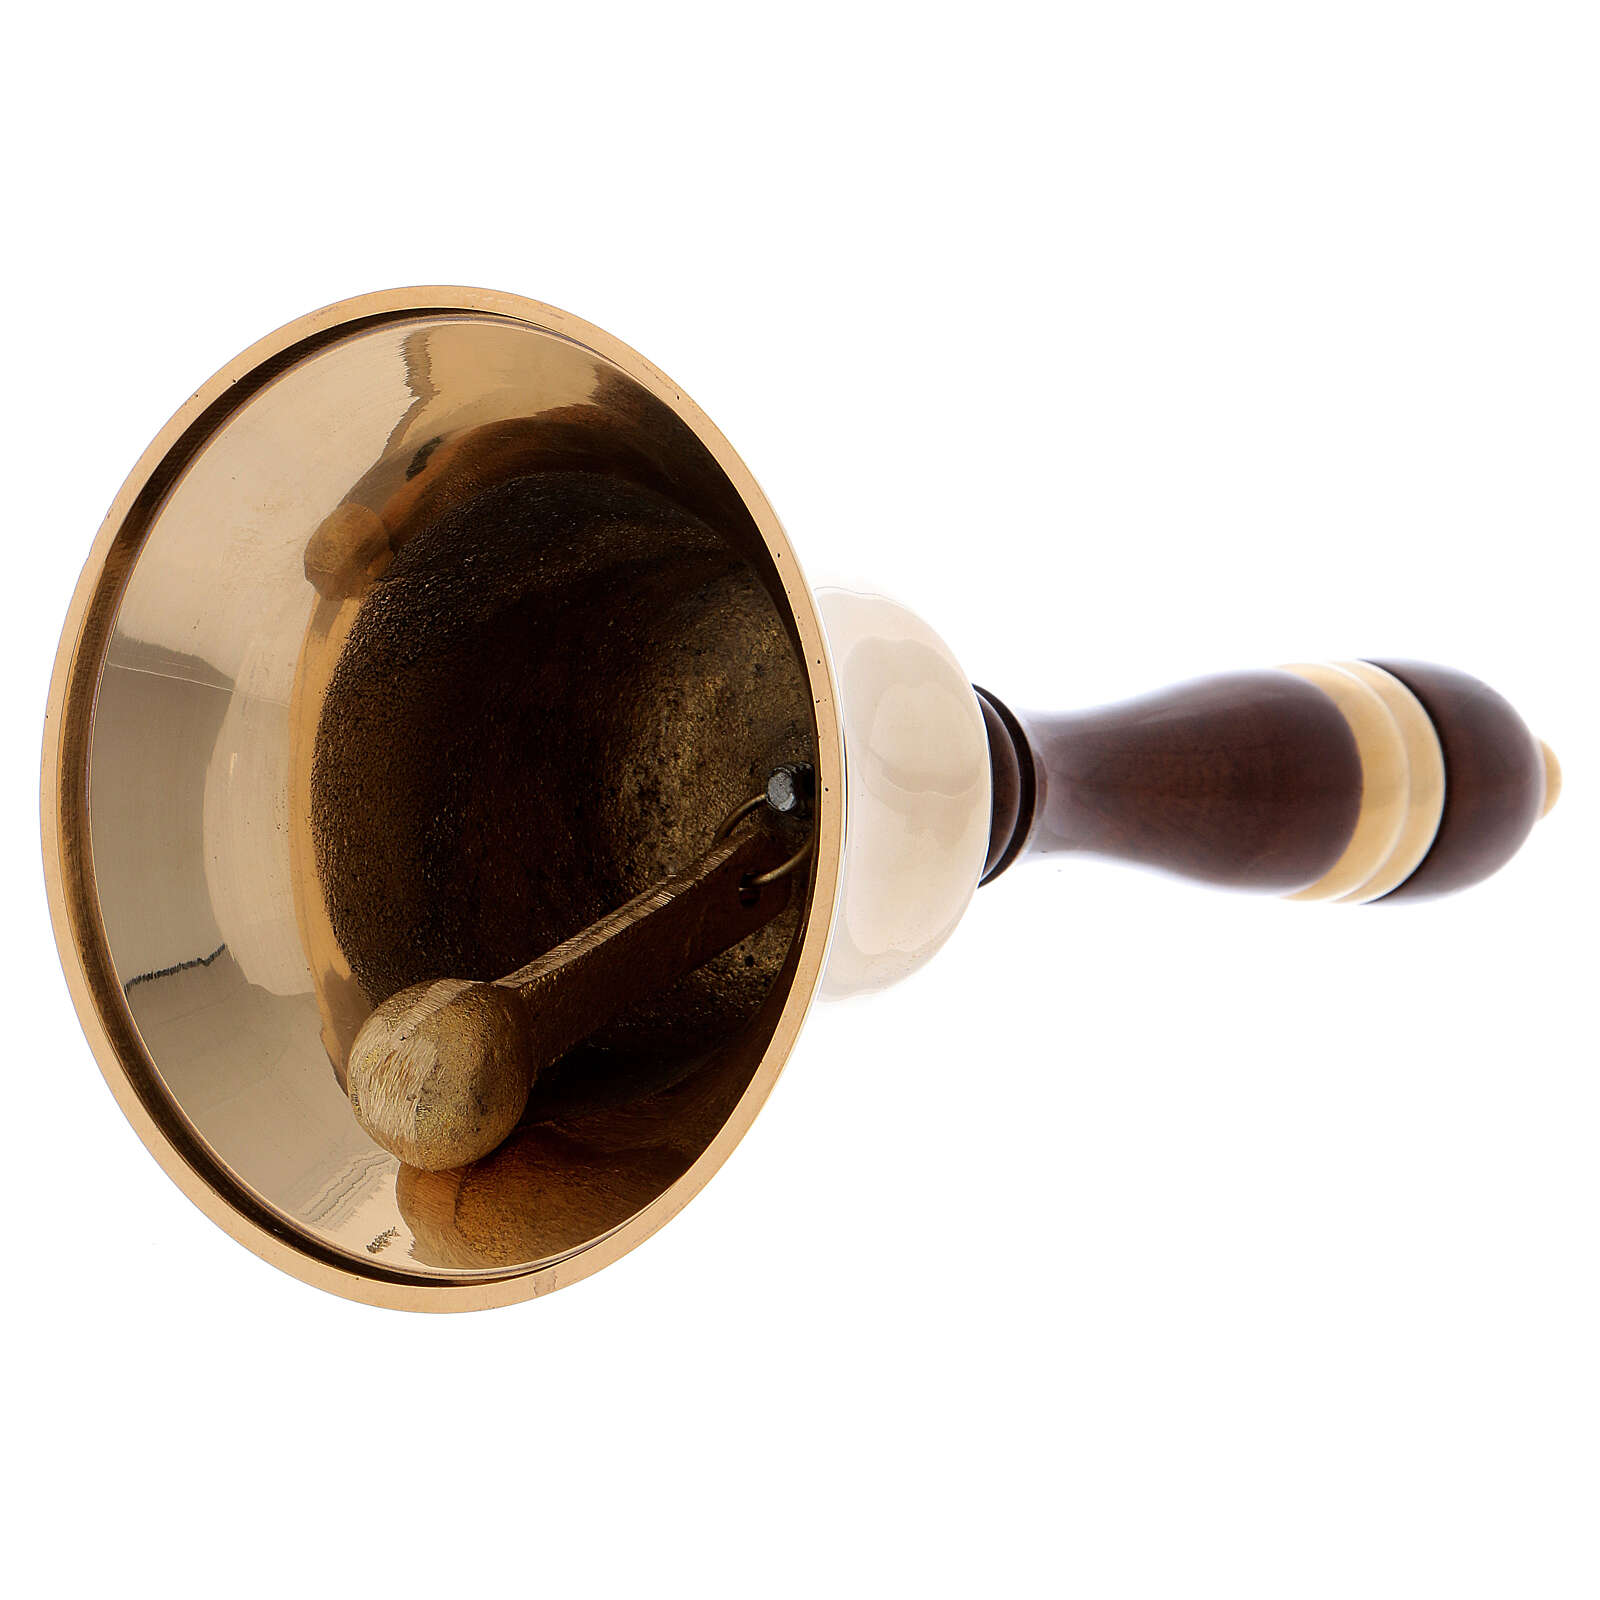 Liturgical bell in gilded brass with wooden handle 22 cm 3